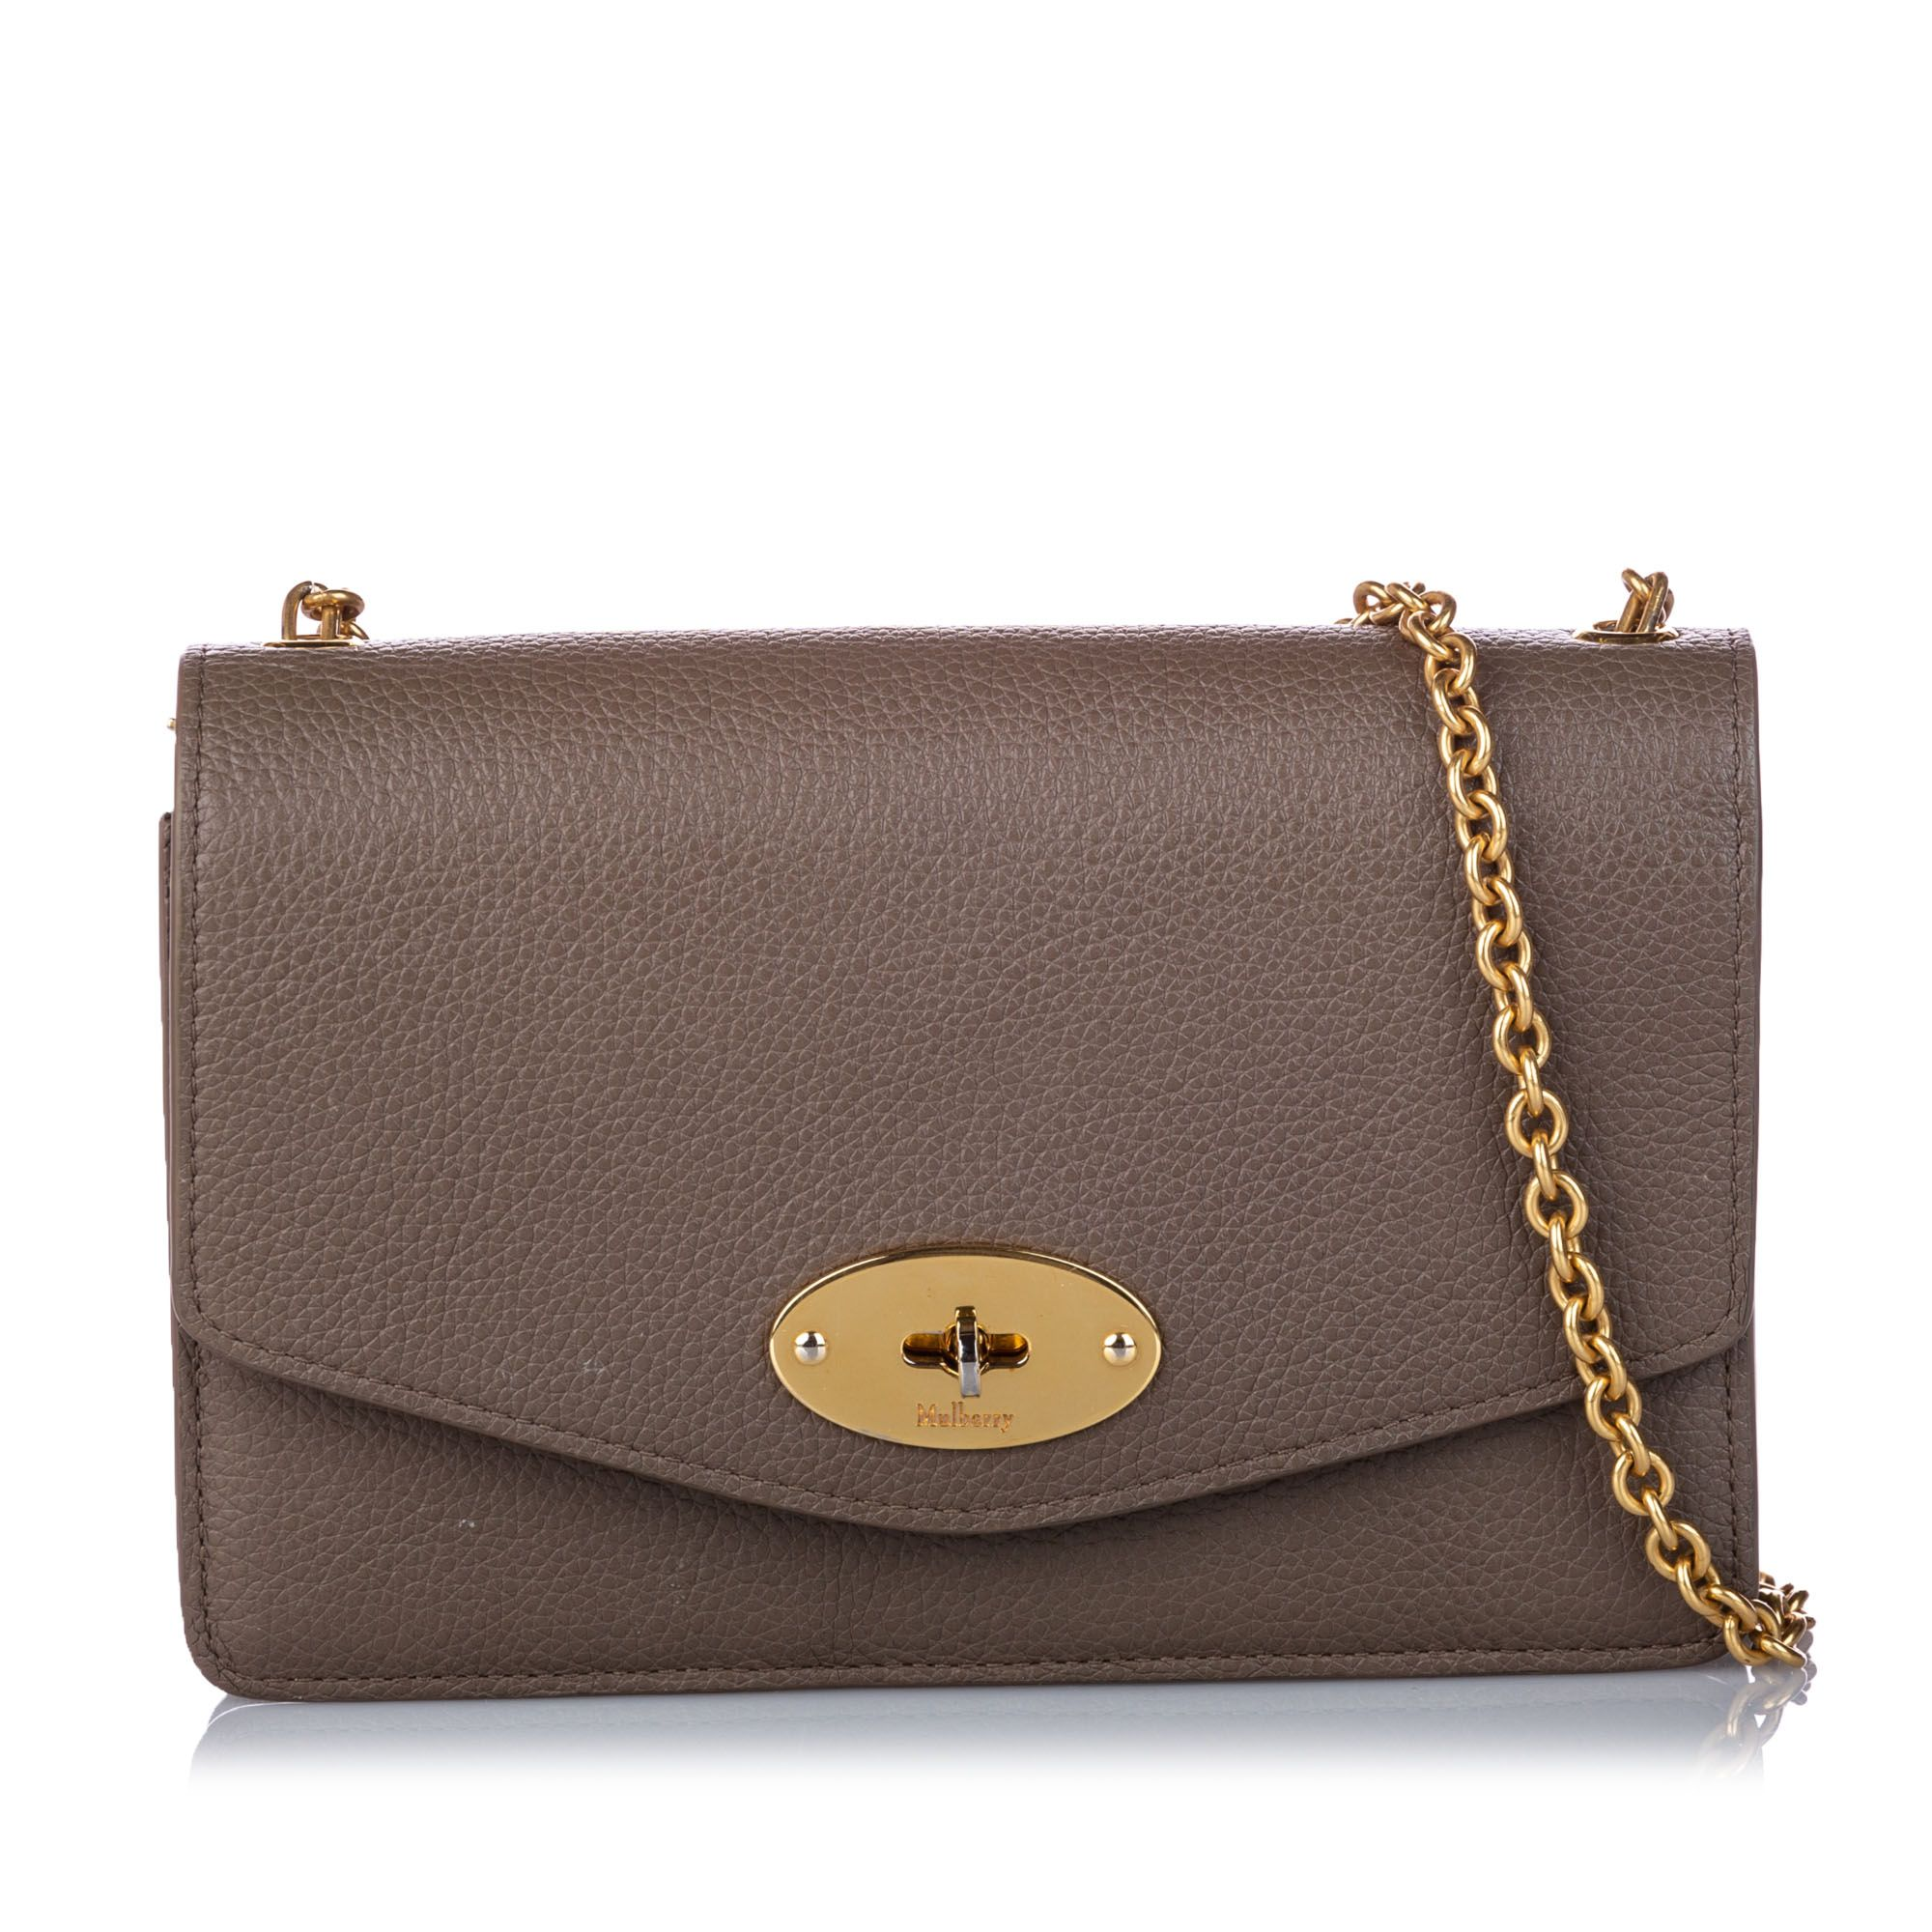 Vintage Mulberry Bayswater Leather Wallet on Chain Brown